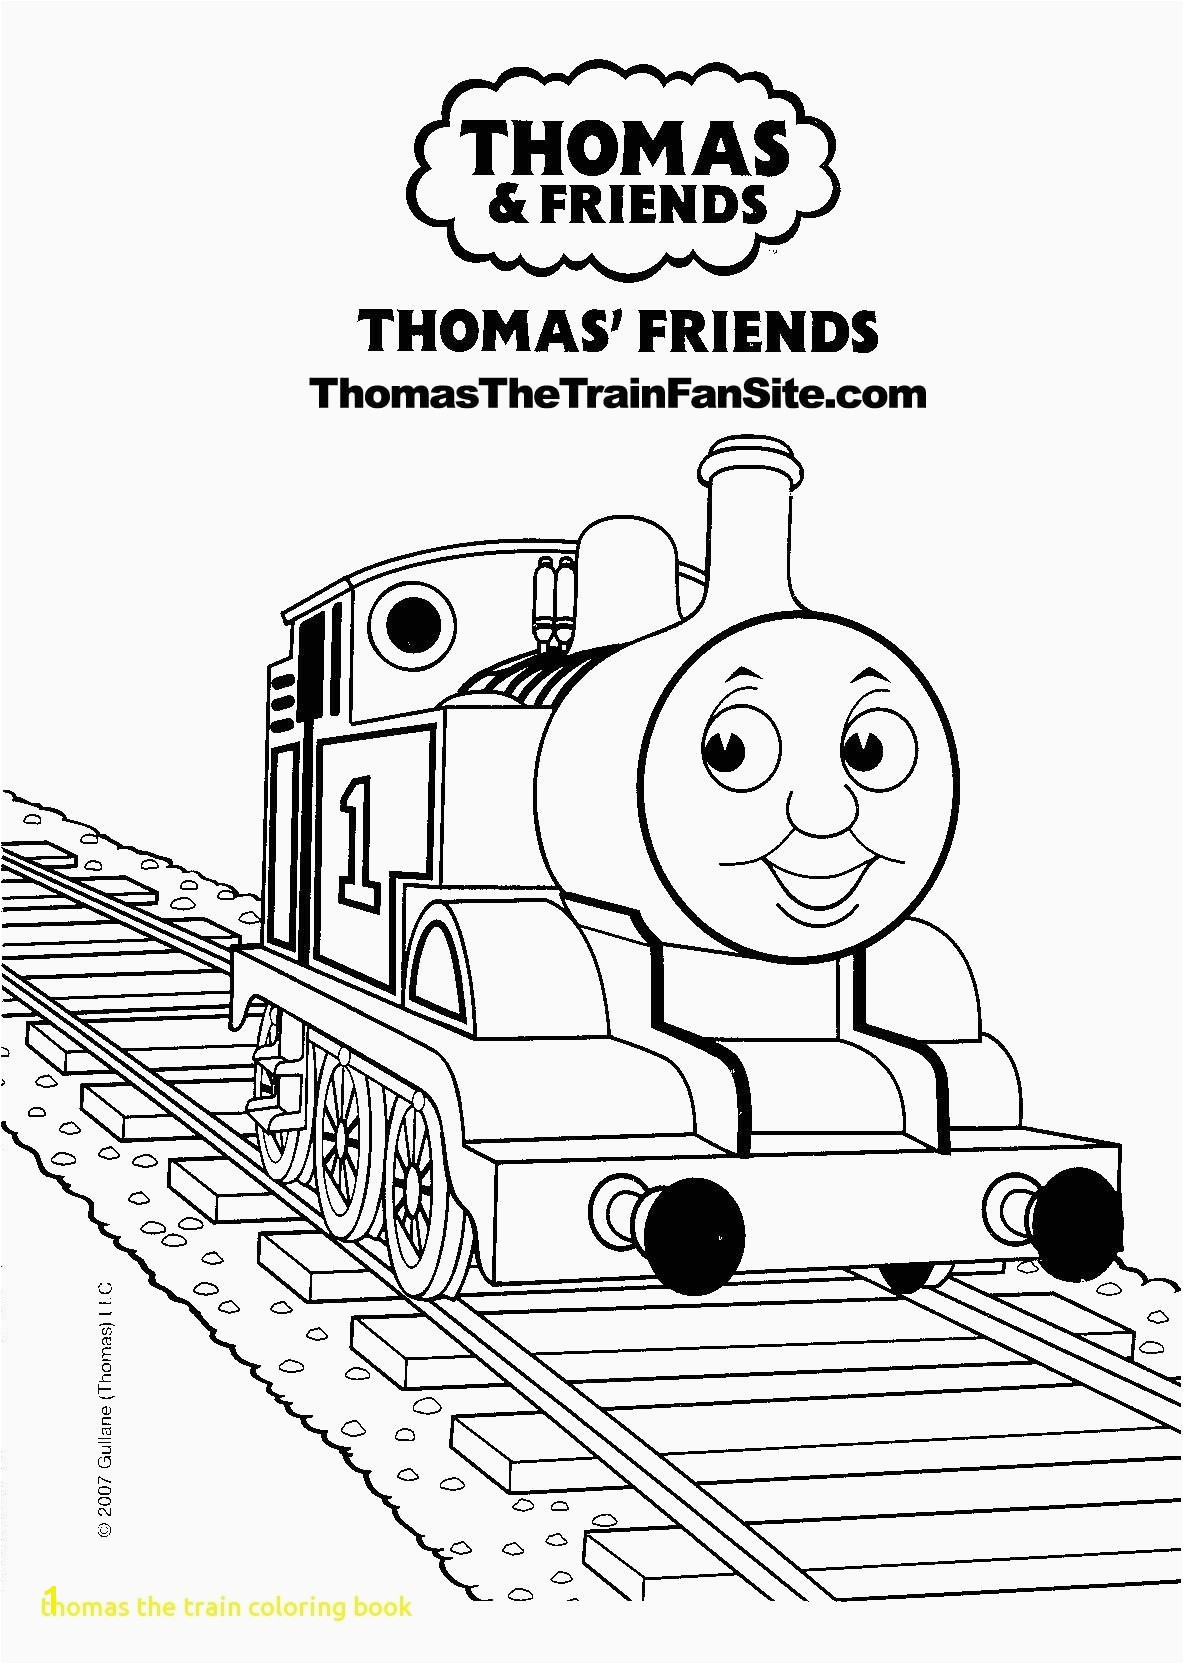 Thomas And Friends Coloring Pages Coloring Pages Thomas The Train Heathermarxgallery